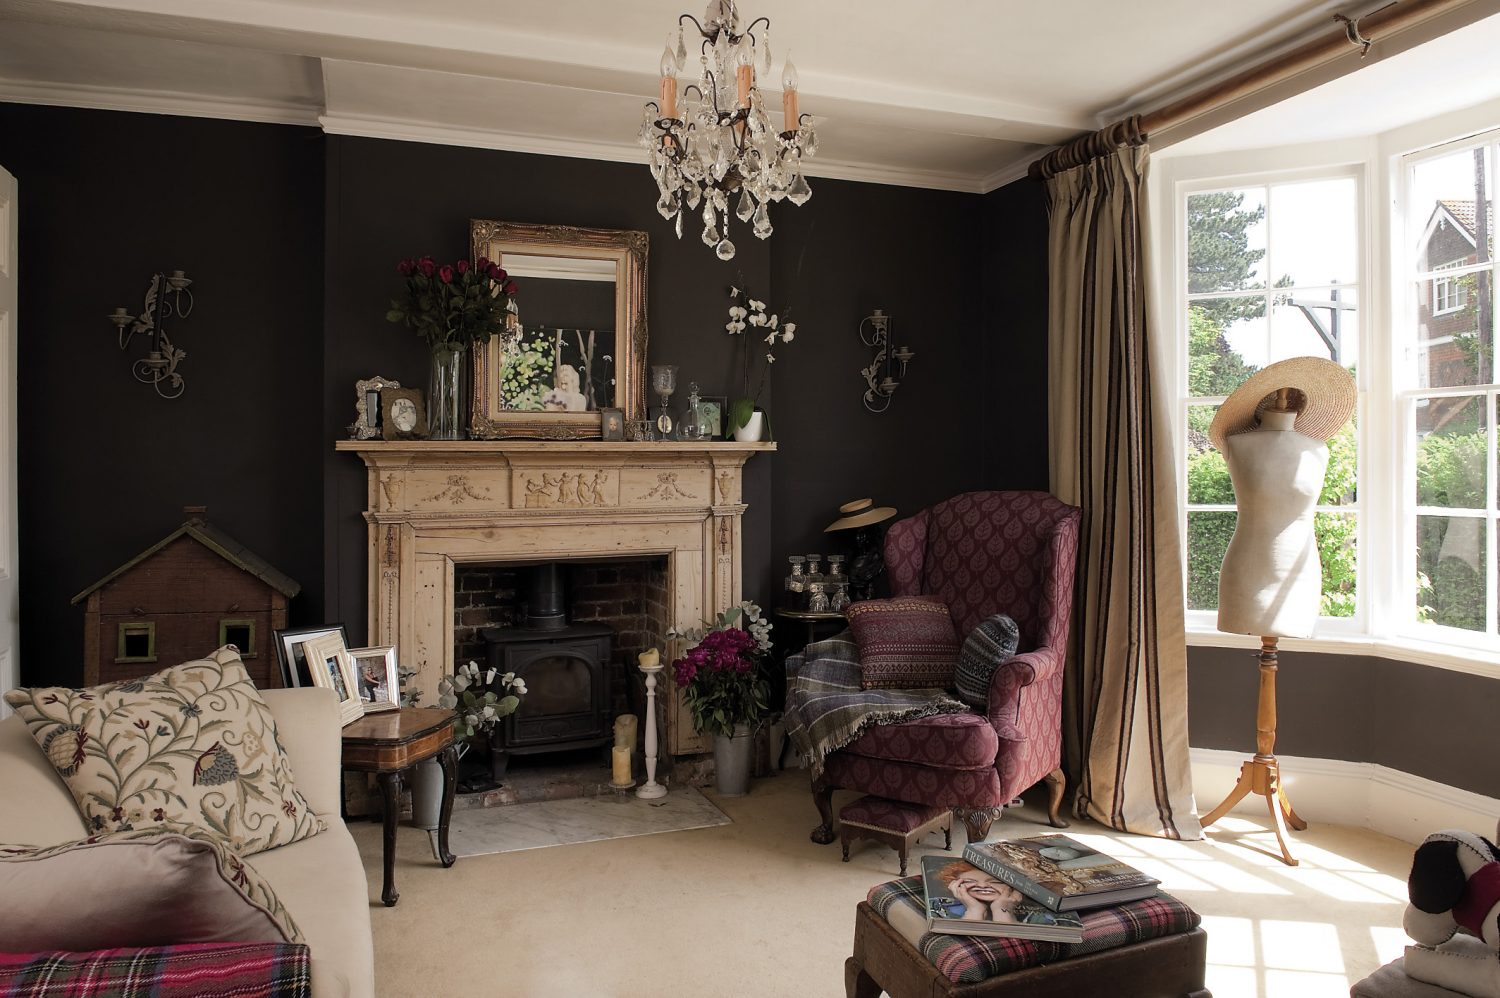 """Across the hallway, the drawing room has been painted a dramatic mocha. """"It's Flamant paint from Belgium,"""" says Pippa. """"Their colours are really intense and I think this one's called Lune de Noir."""" An antique crystal chandelier reflects the sunlight around the room"""